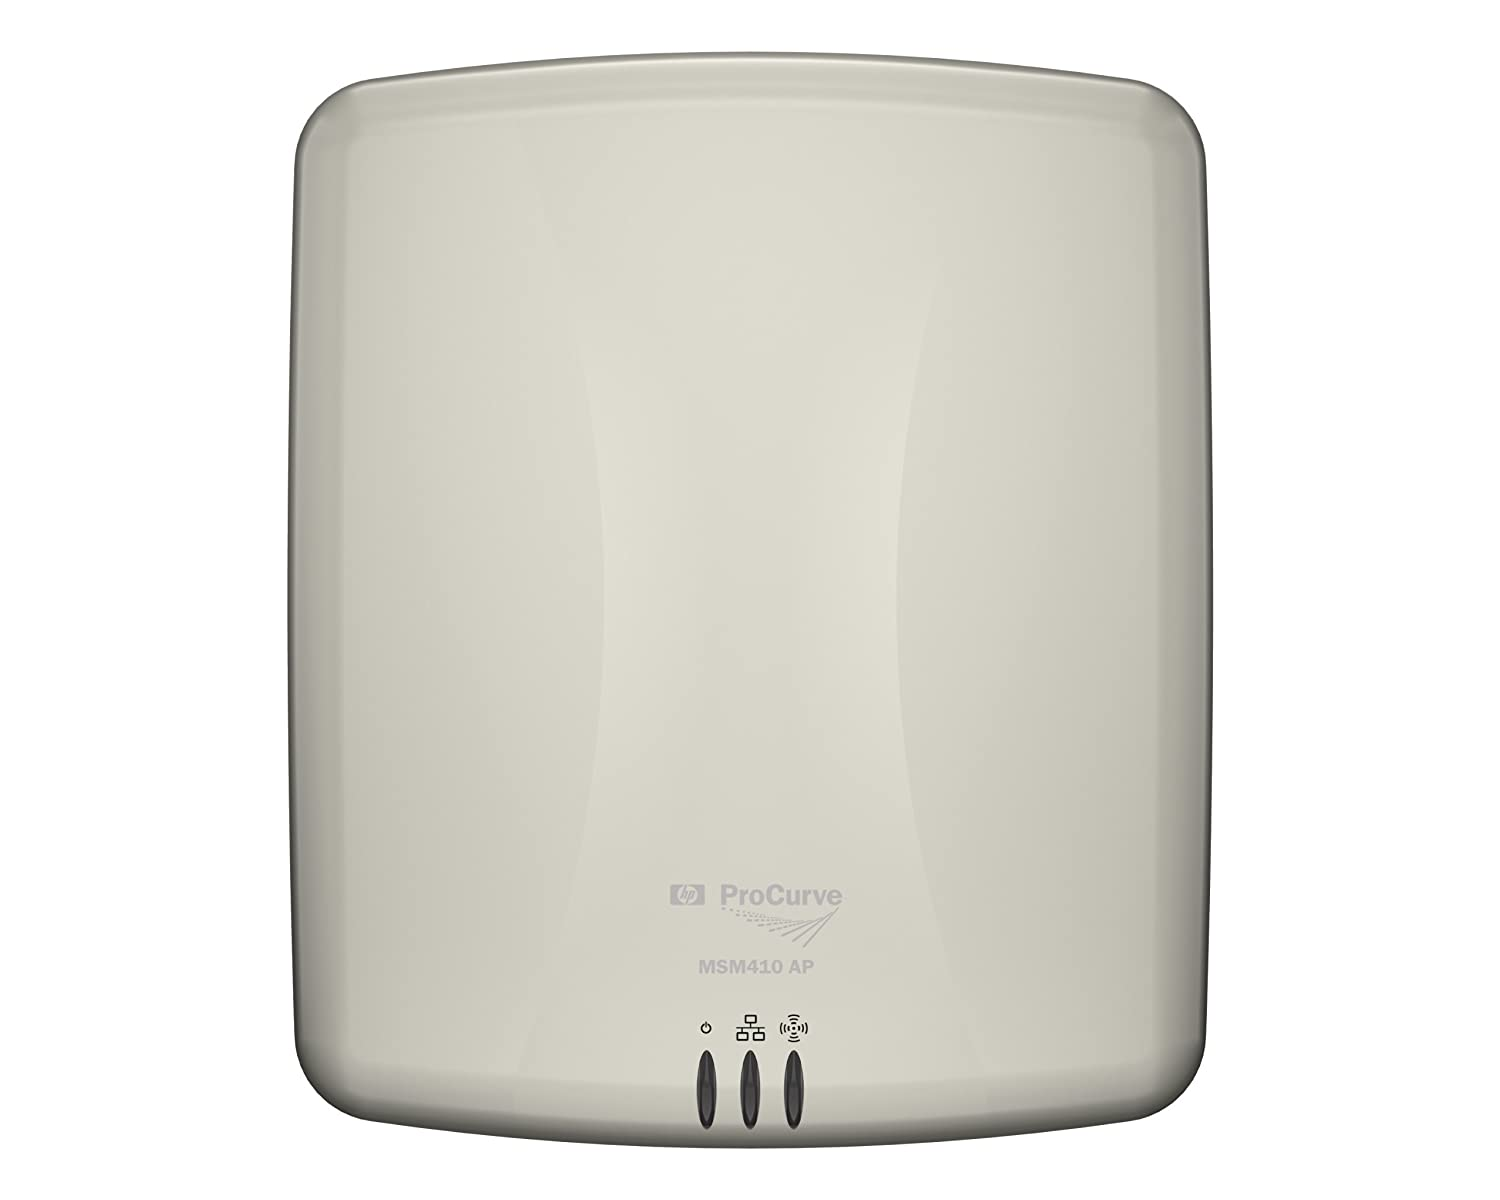 Point d'acc�s WiFi HP PROCURVE MSM410 beige